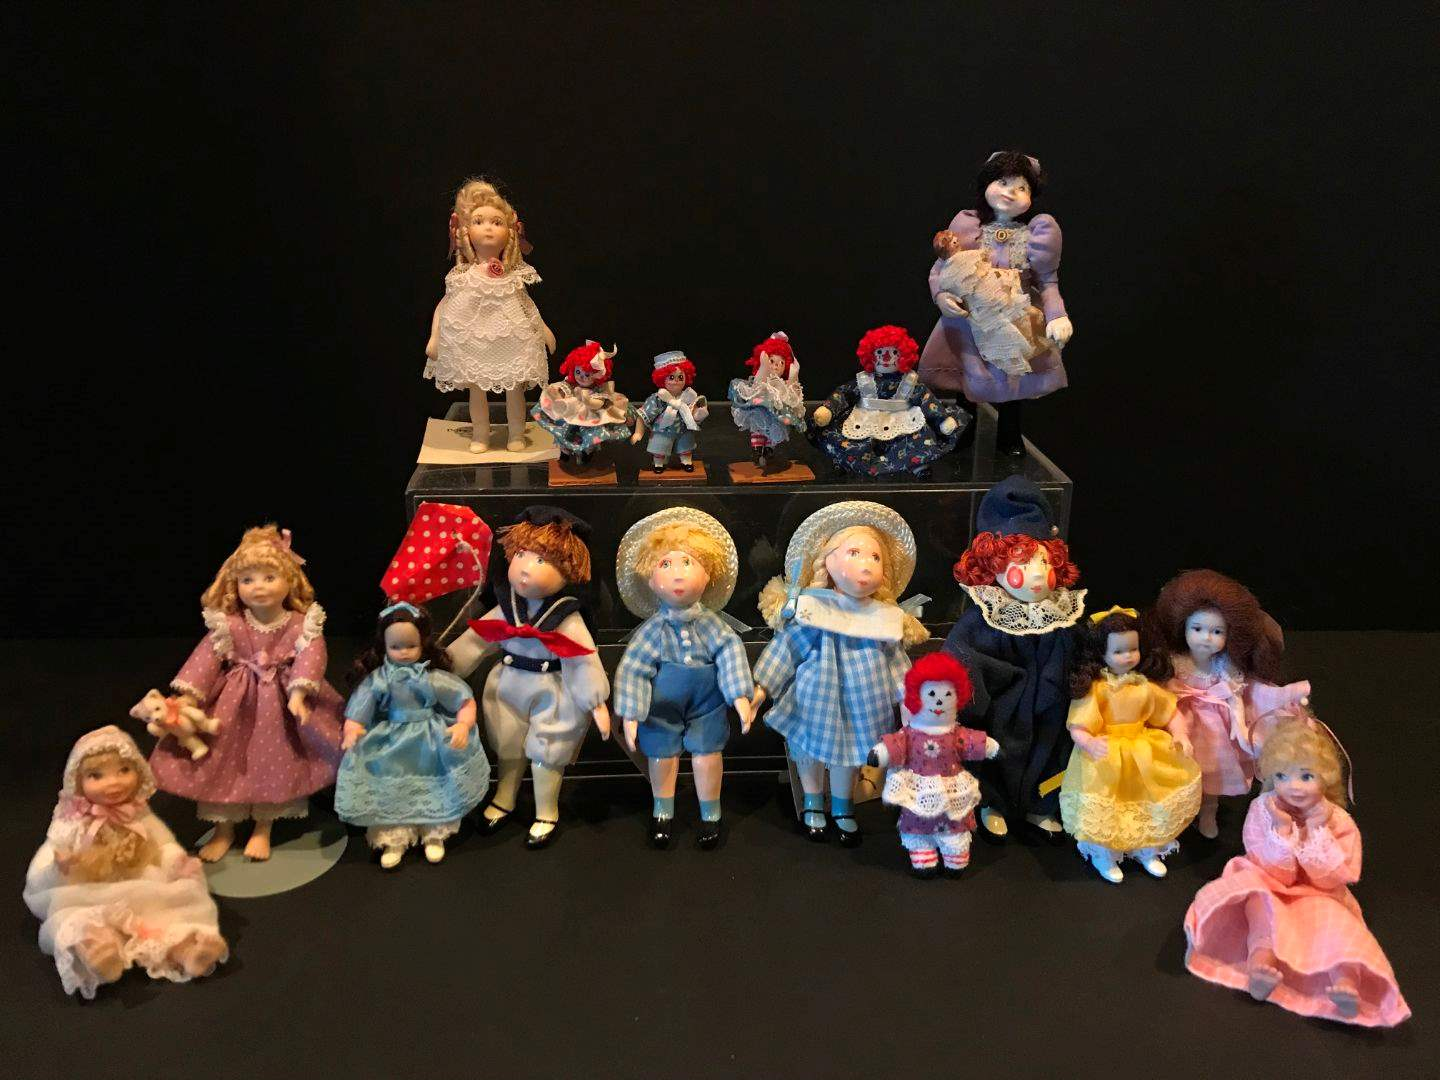 """Lot # 170 - Porcelain Dolls, """"Small People"""" by Cecily, Raggedy Ann & Andy """"The Doll House Miniatures"""" by Tim & Jody Richardson (main image)"""